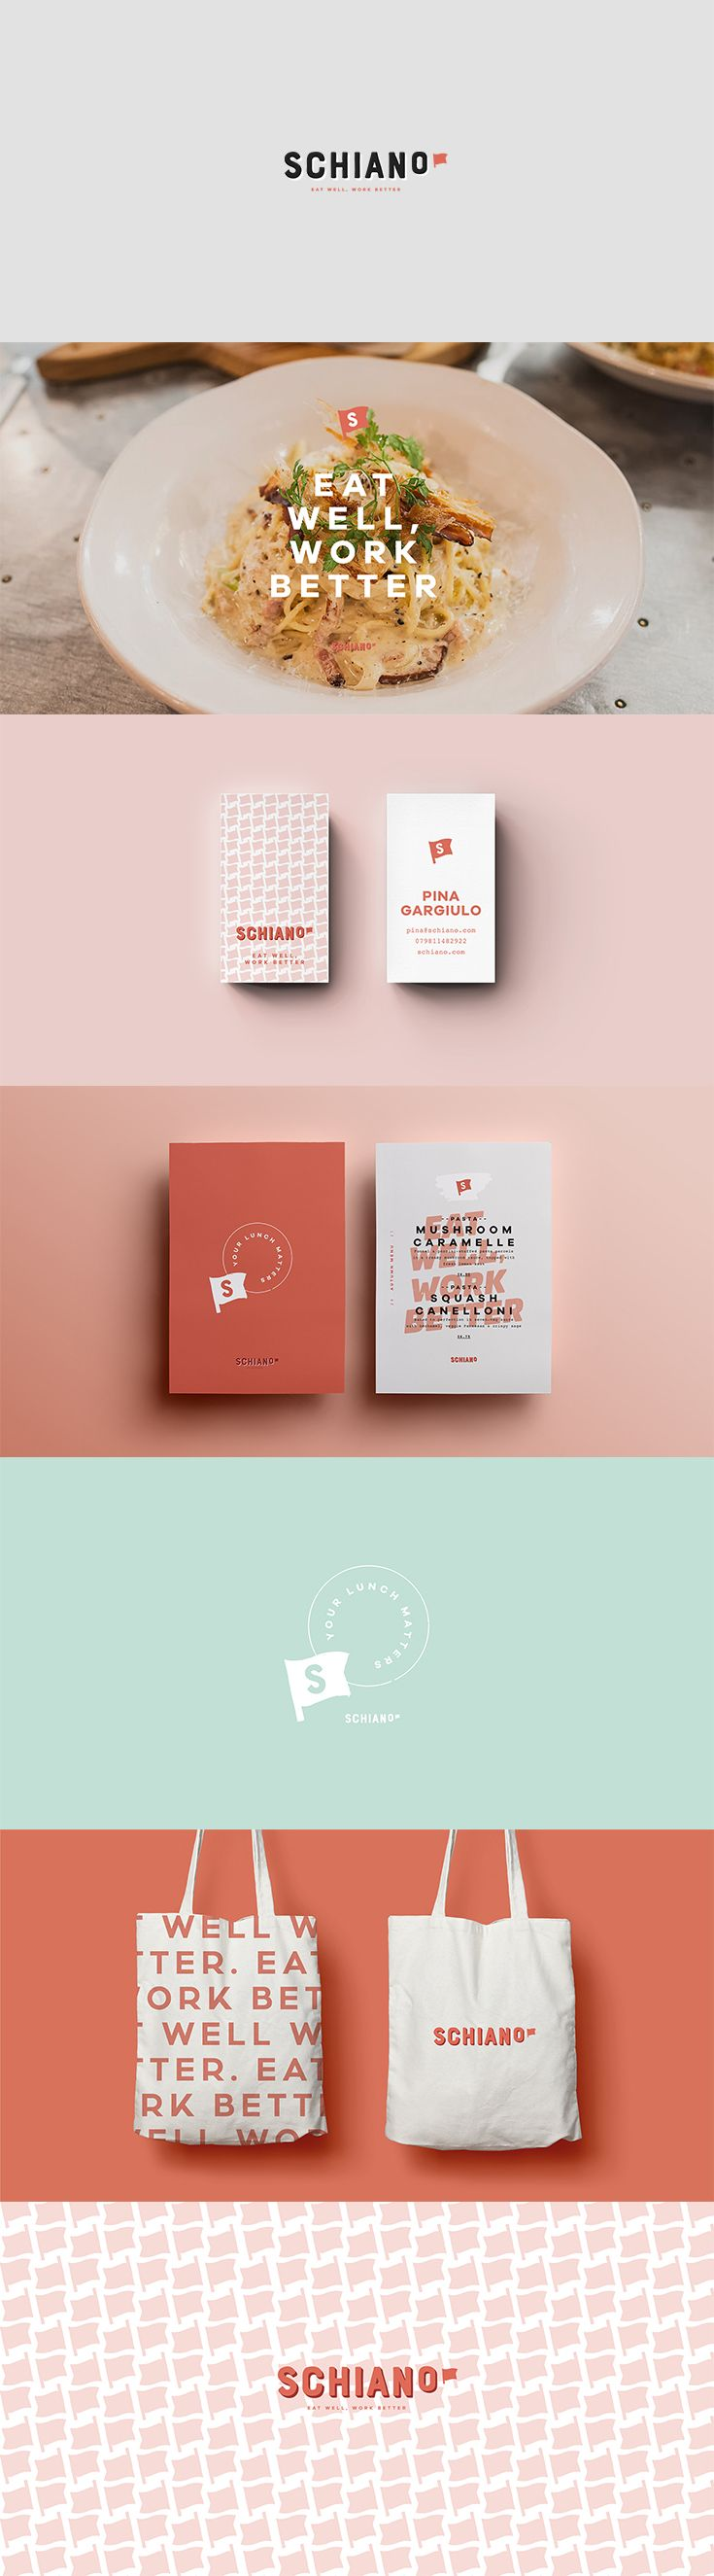 New Brand Identity By We Are Flourish For Italian Catering Business Schiano We Had Fun With This One Branding Foodb Branding Creative Agency Web Design